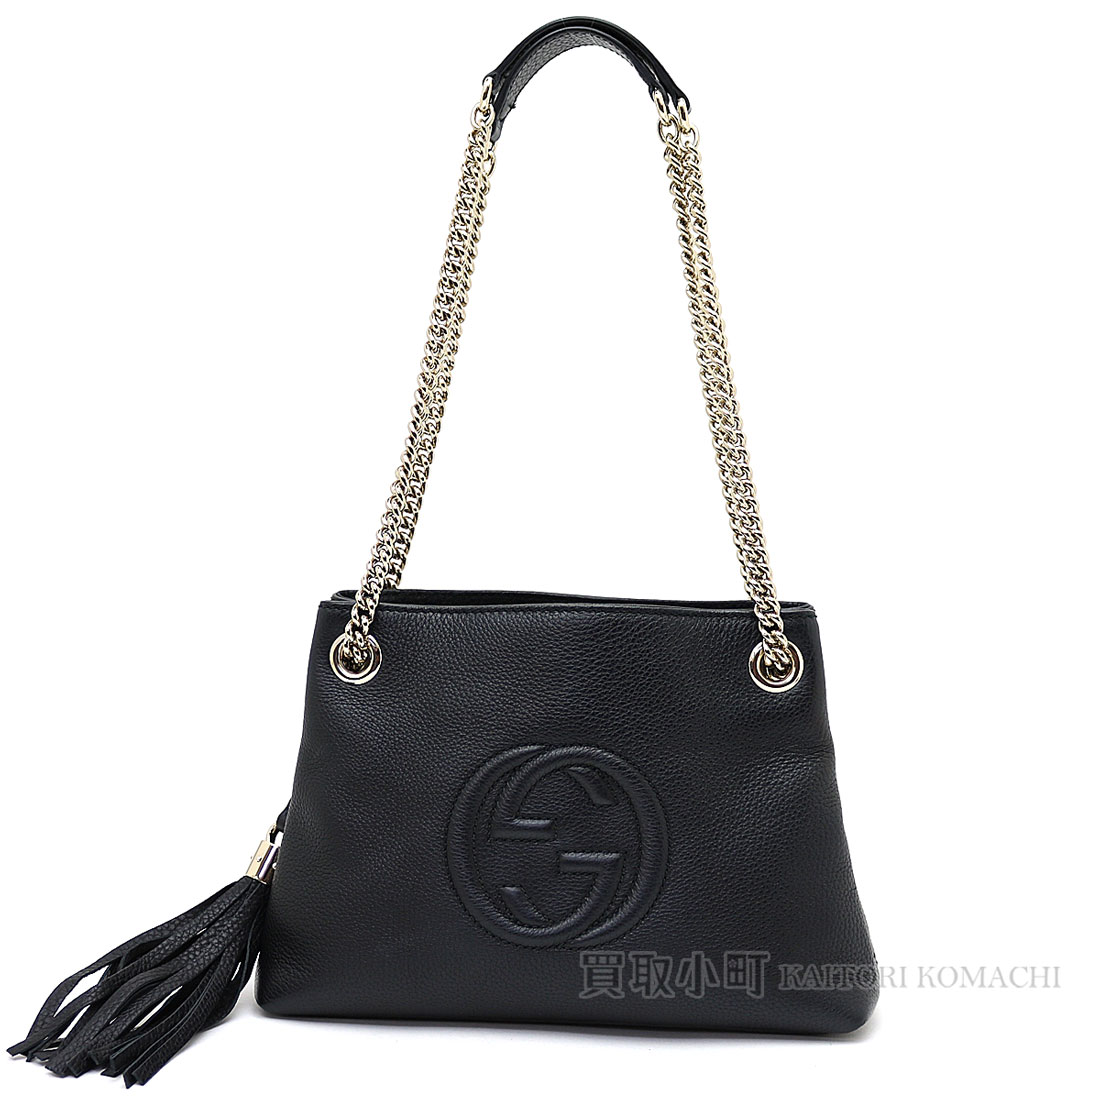 7796347adac Gucci Soho black leather chain shoulder bag tassel charm interlocking grip  G crossbody bag fringe 387043 A7M0G 1000 SOHO LEATHER BAG